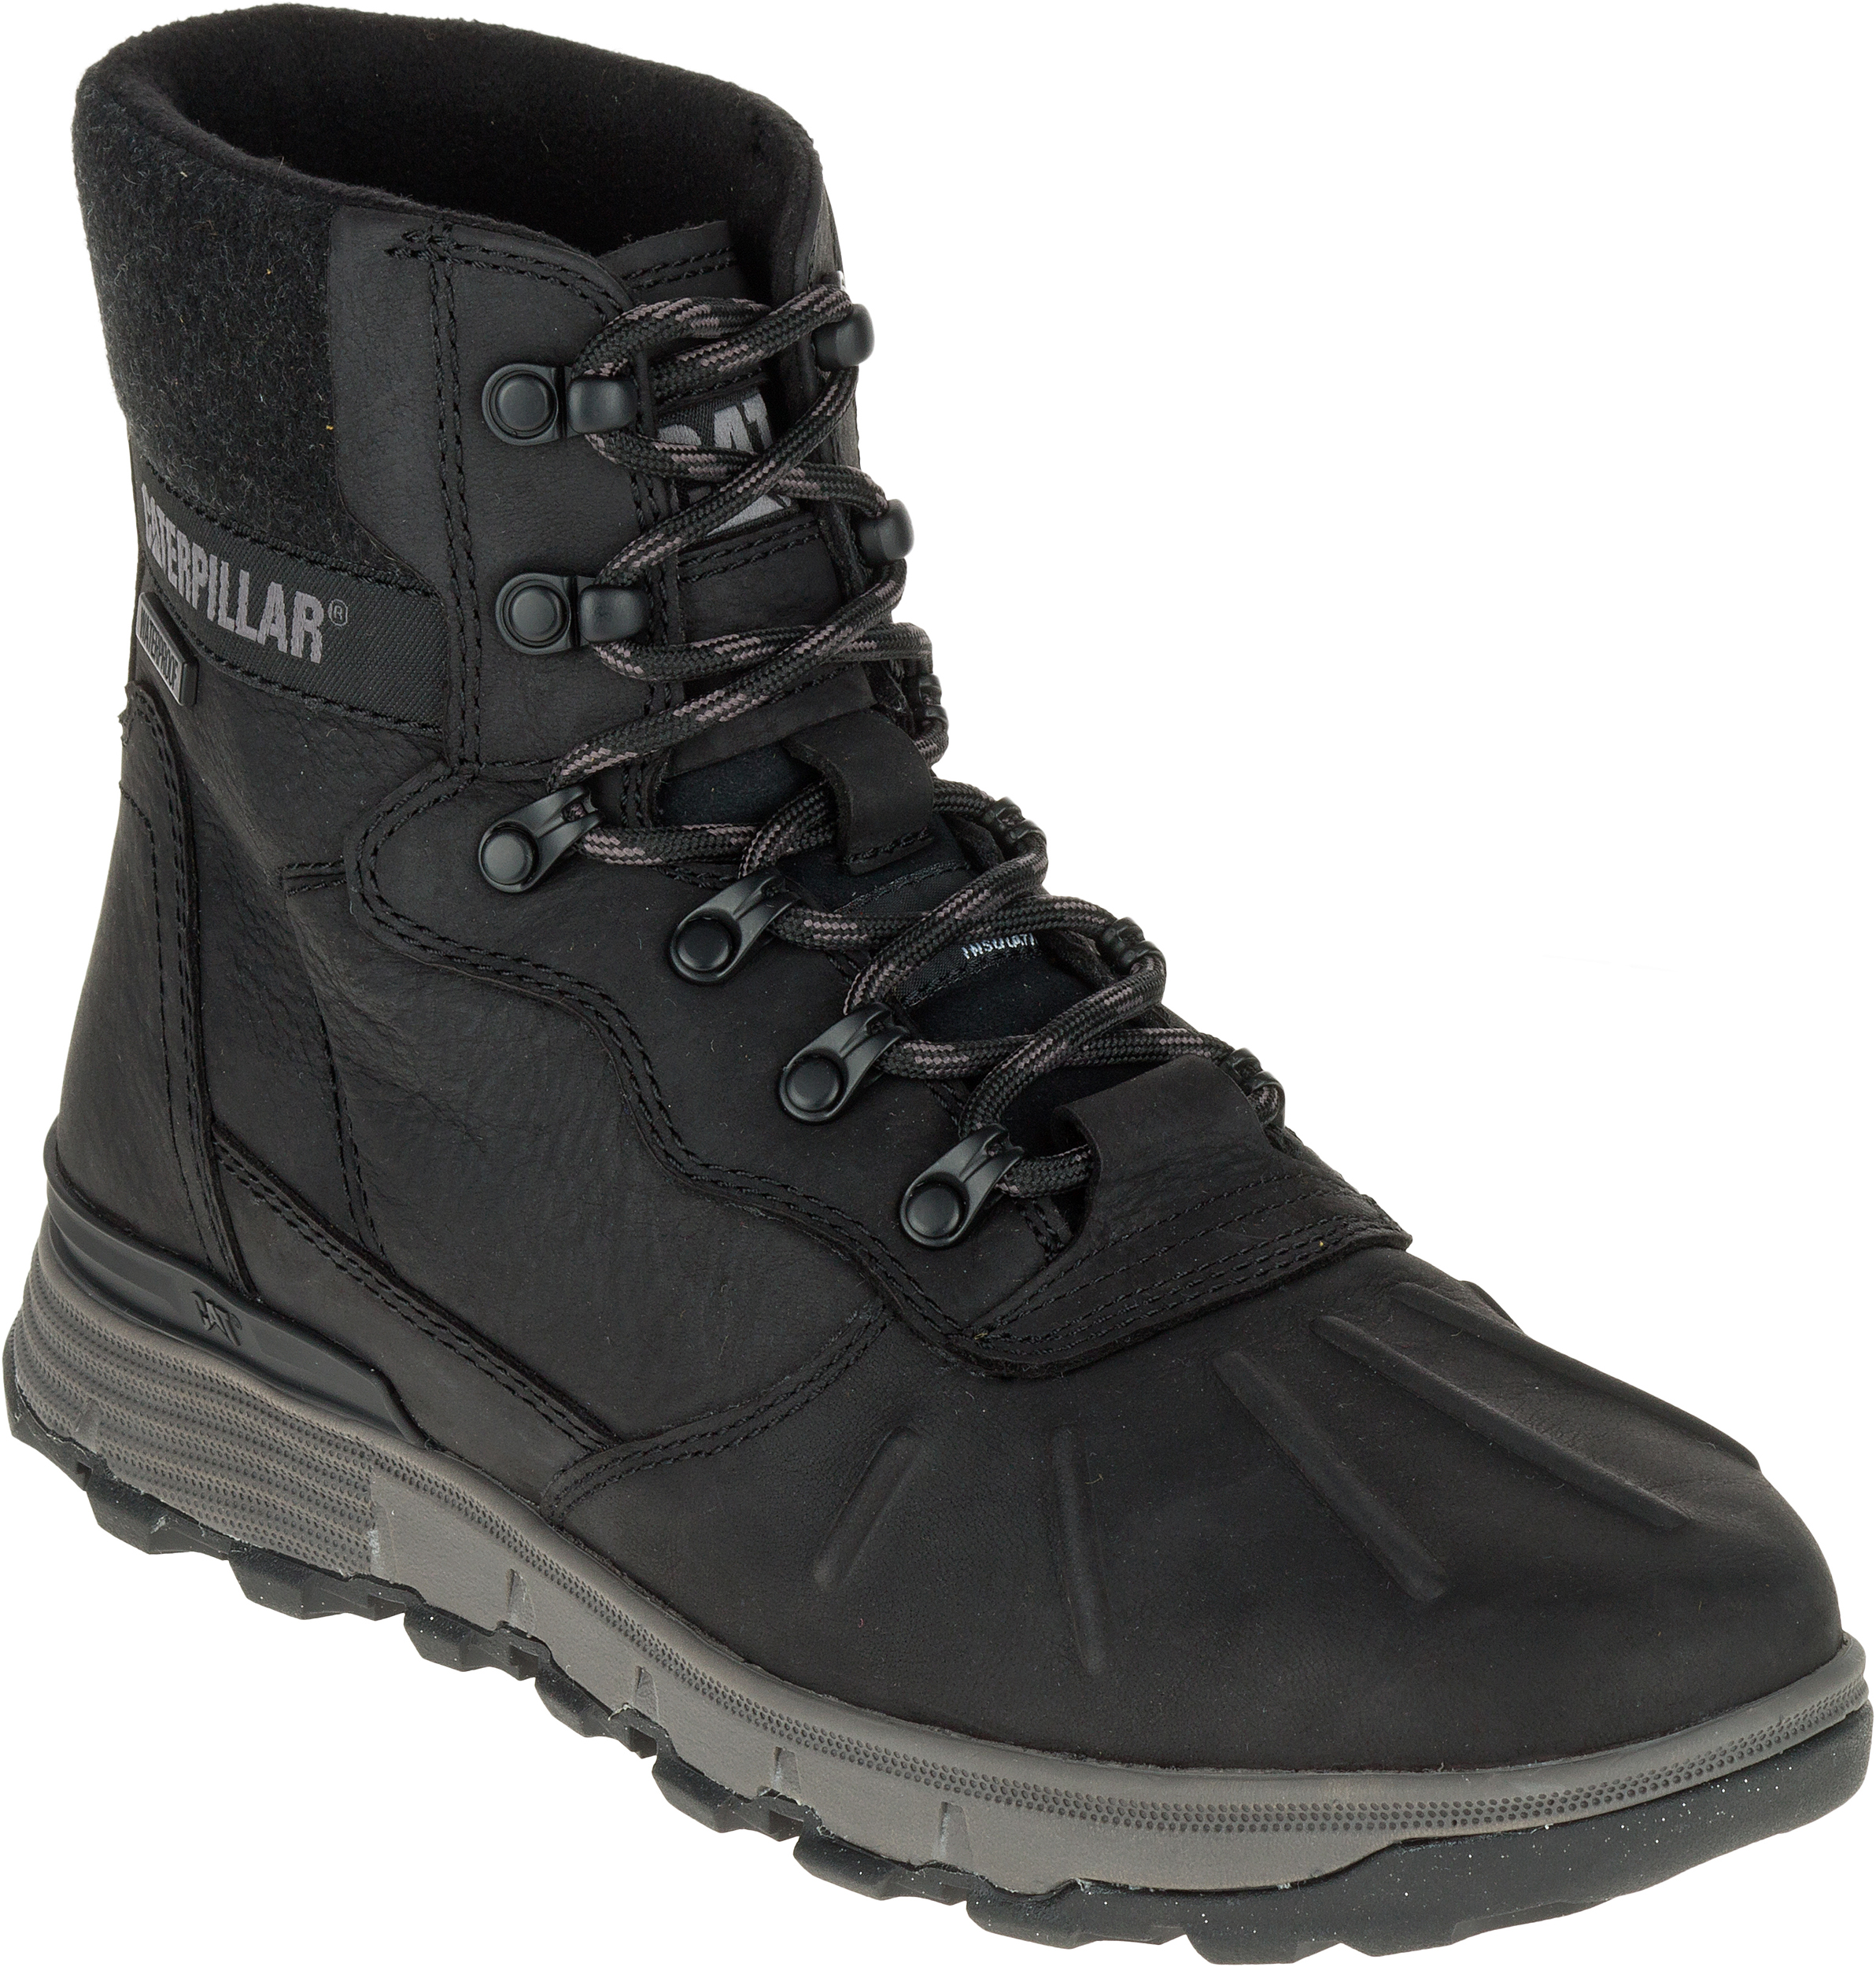 Caterpillar Mens Leather Stiction HI WP Ice+ Outdoor Work Boots